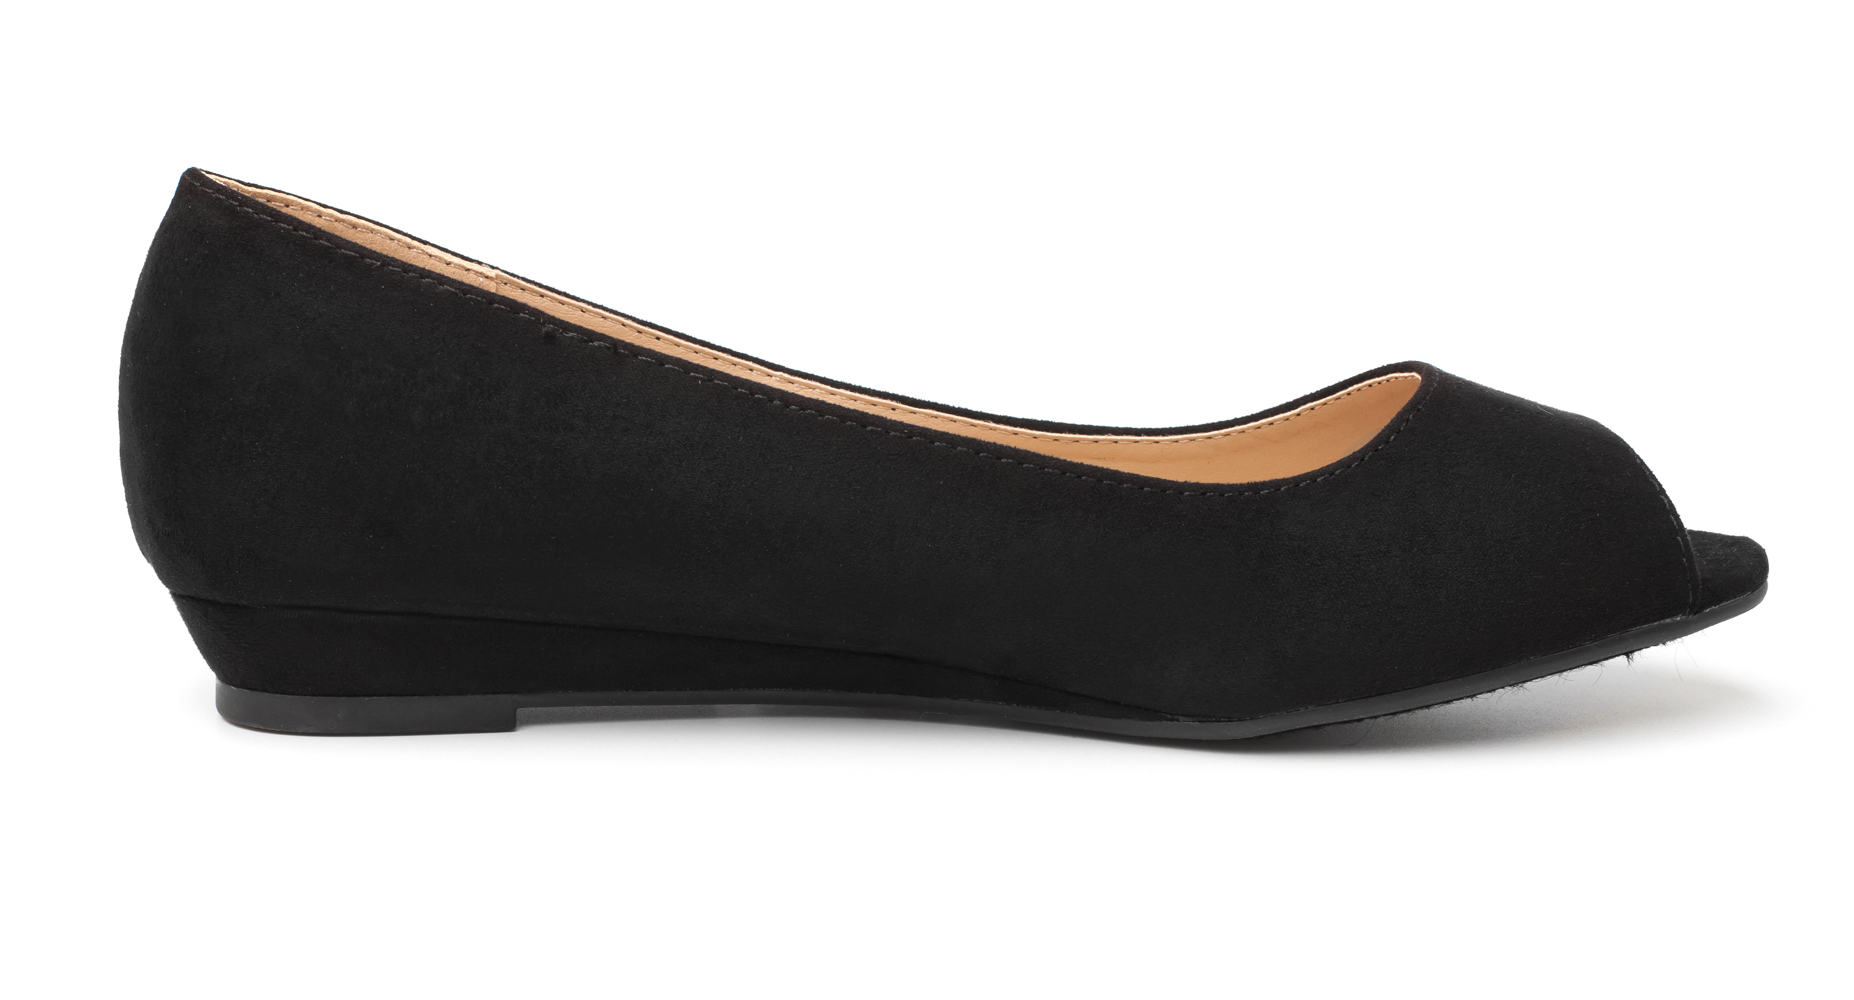 DREAM-PAIRS-Womens-Ballet-Flats-Low-Heel-Open-Toe-Slip-On-Dress-Flat-Shoes thumbnail 44